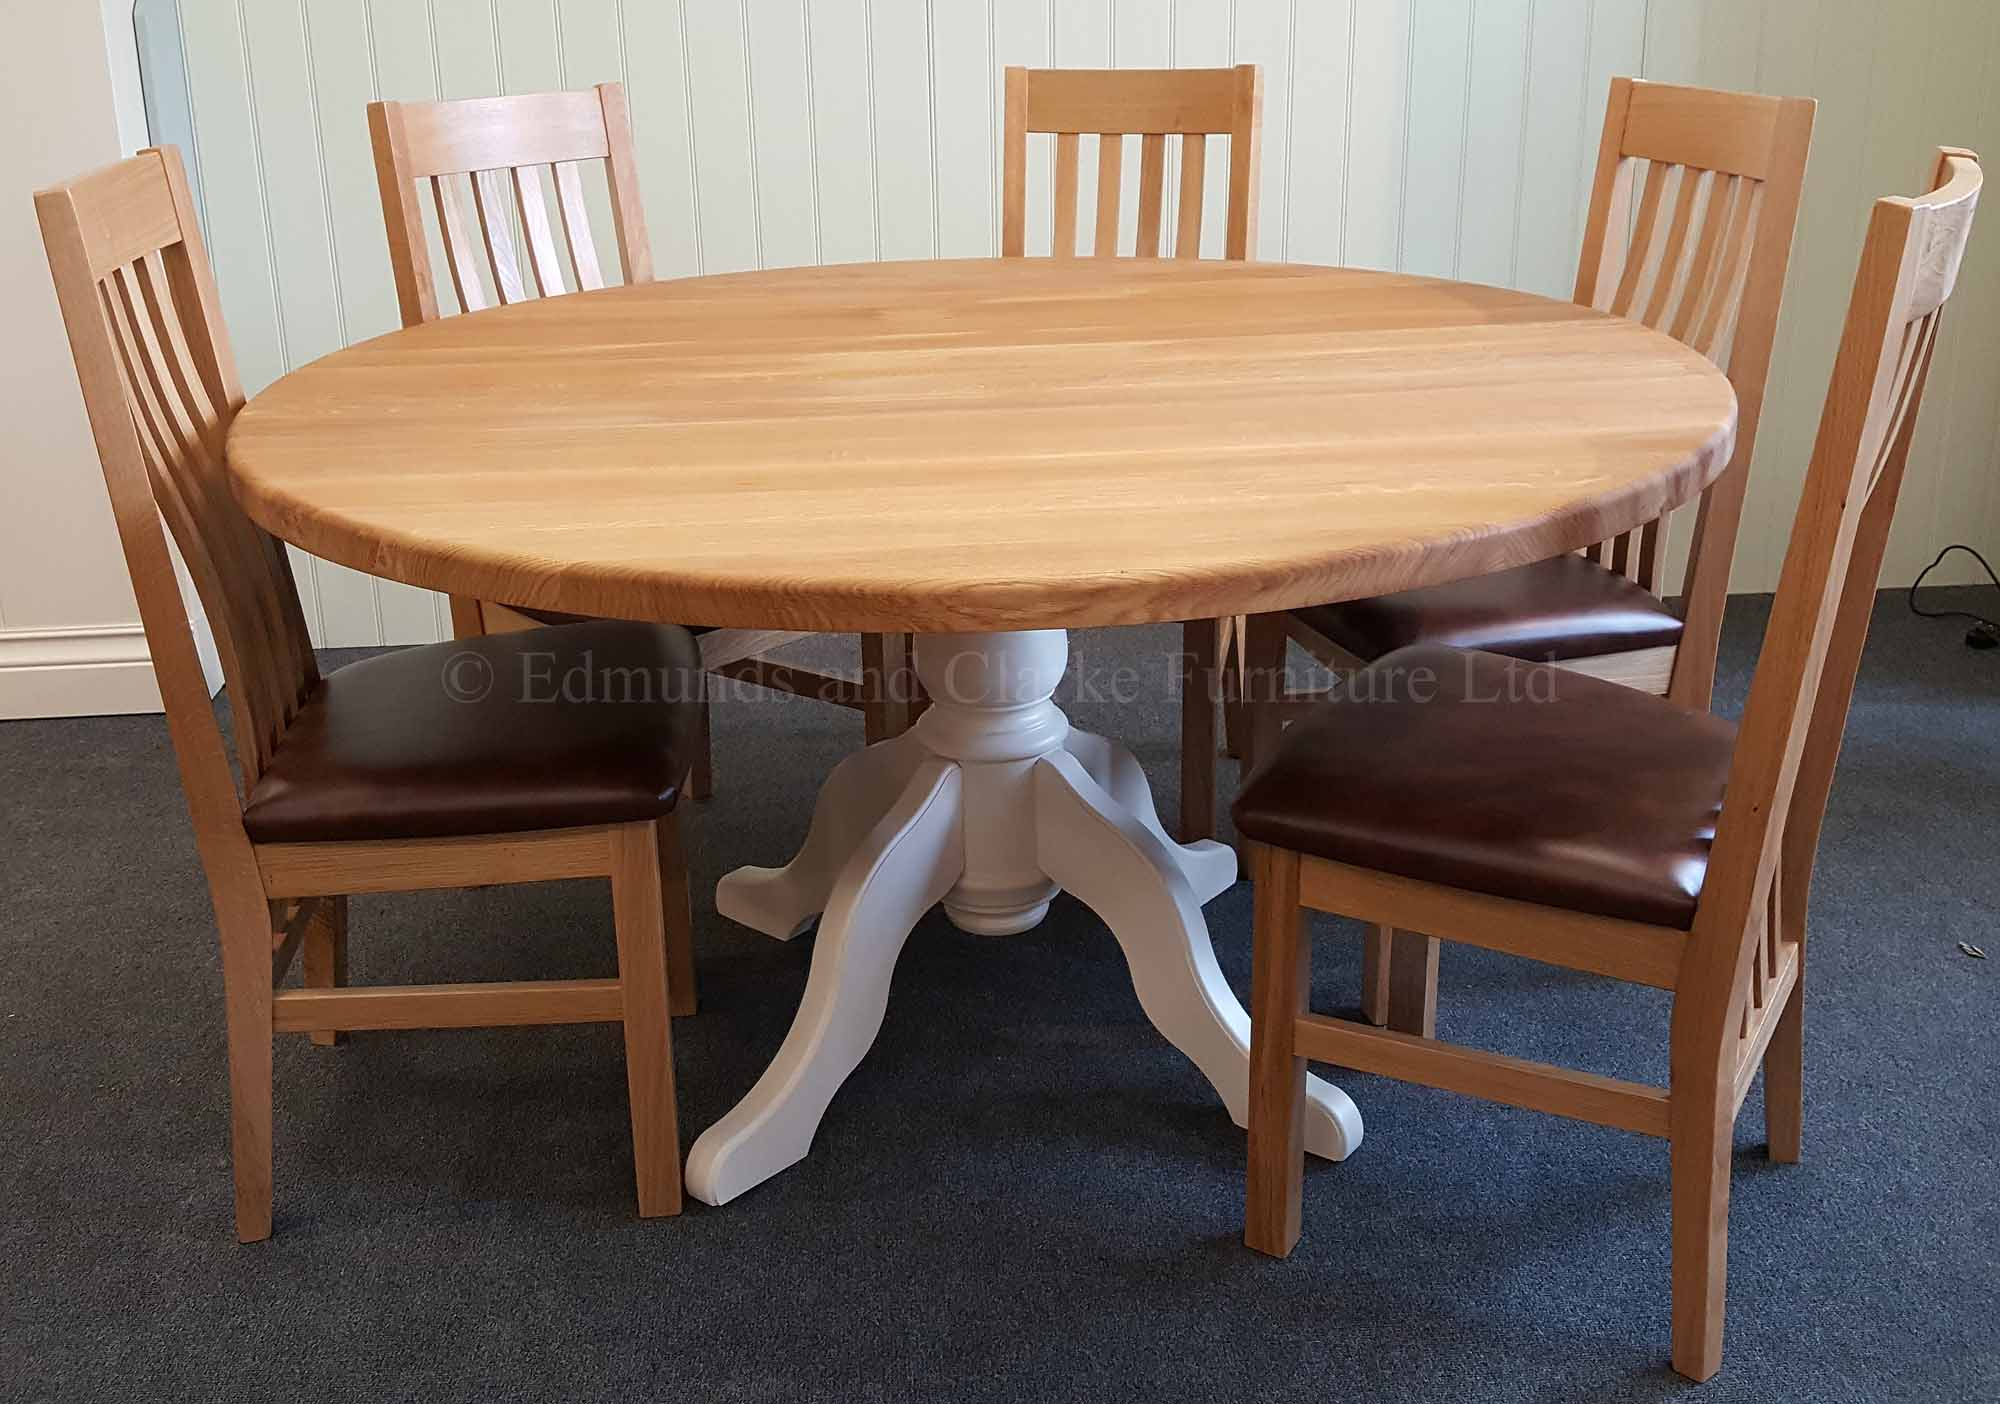 5ft Round circular dining table painted pedestal solid oak top